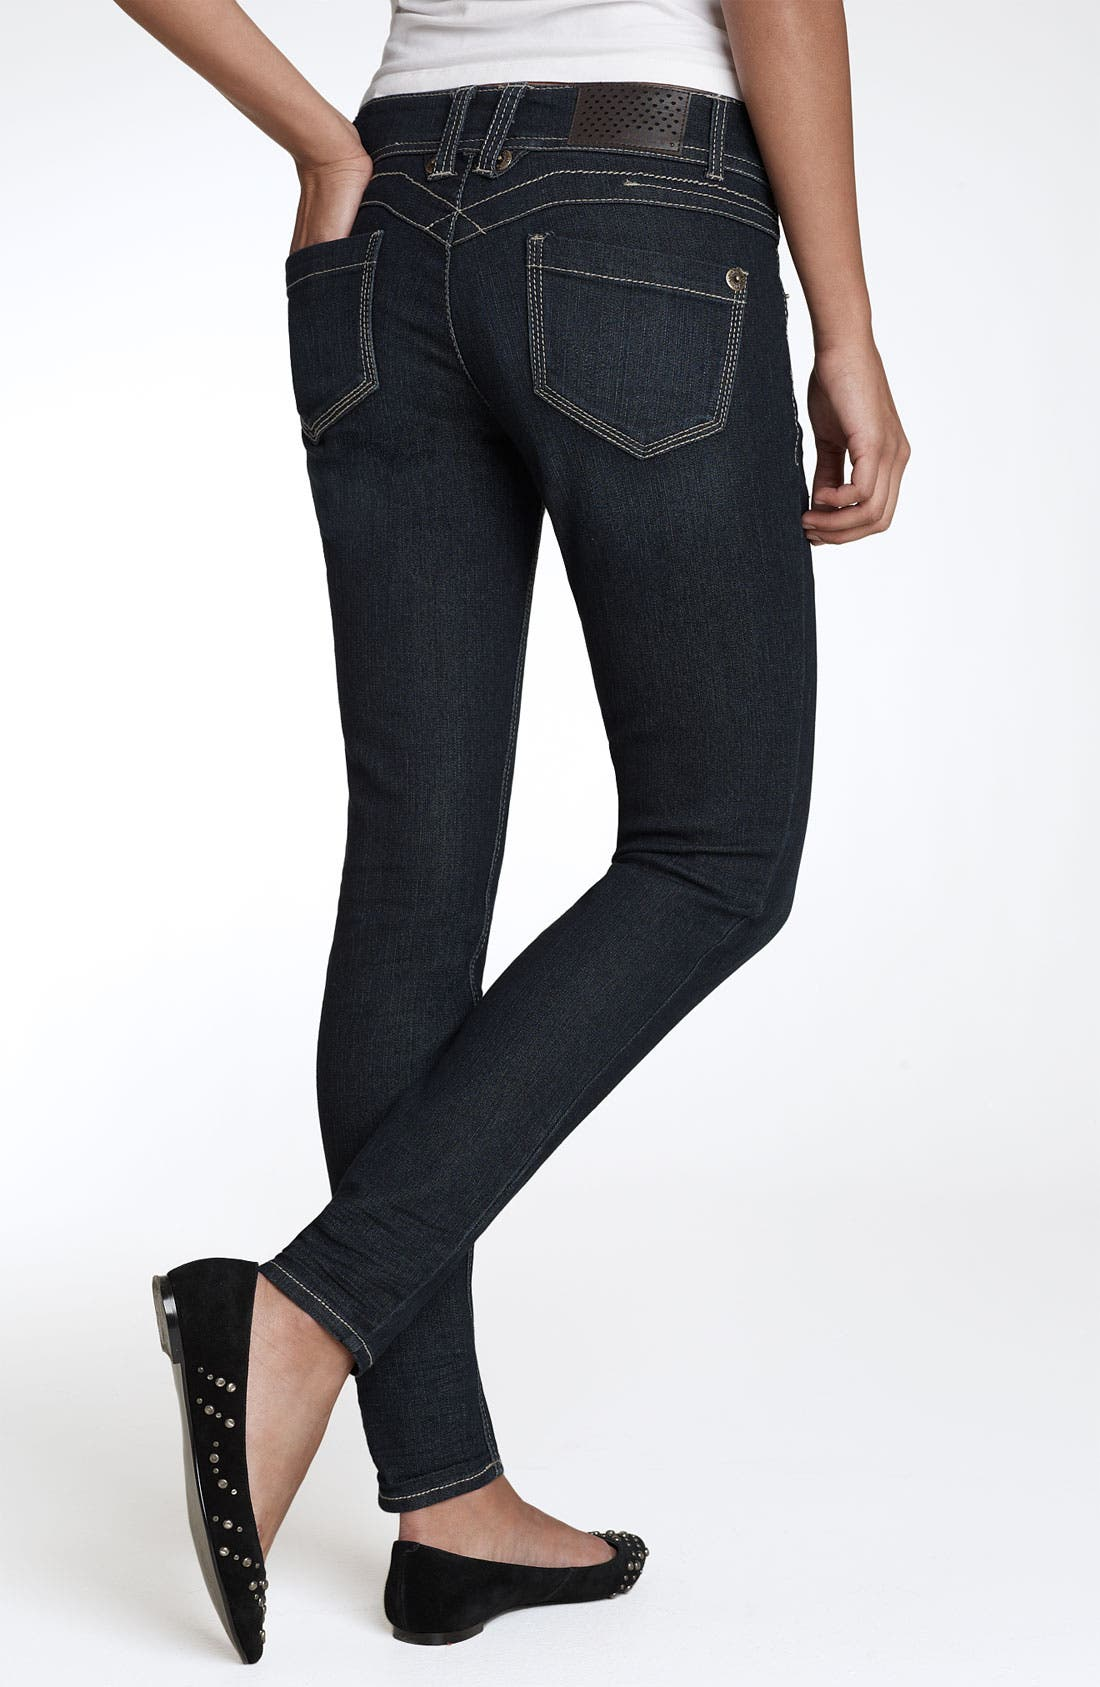 Main Image - Jolt 'Pick Me Up' Stretch Denim Leggings (Denim) (Juniors)